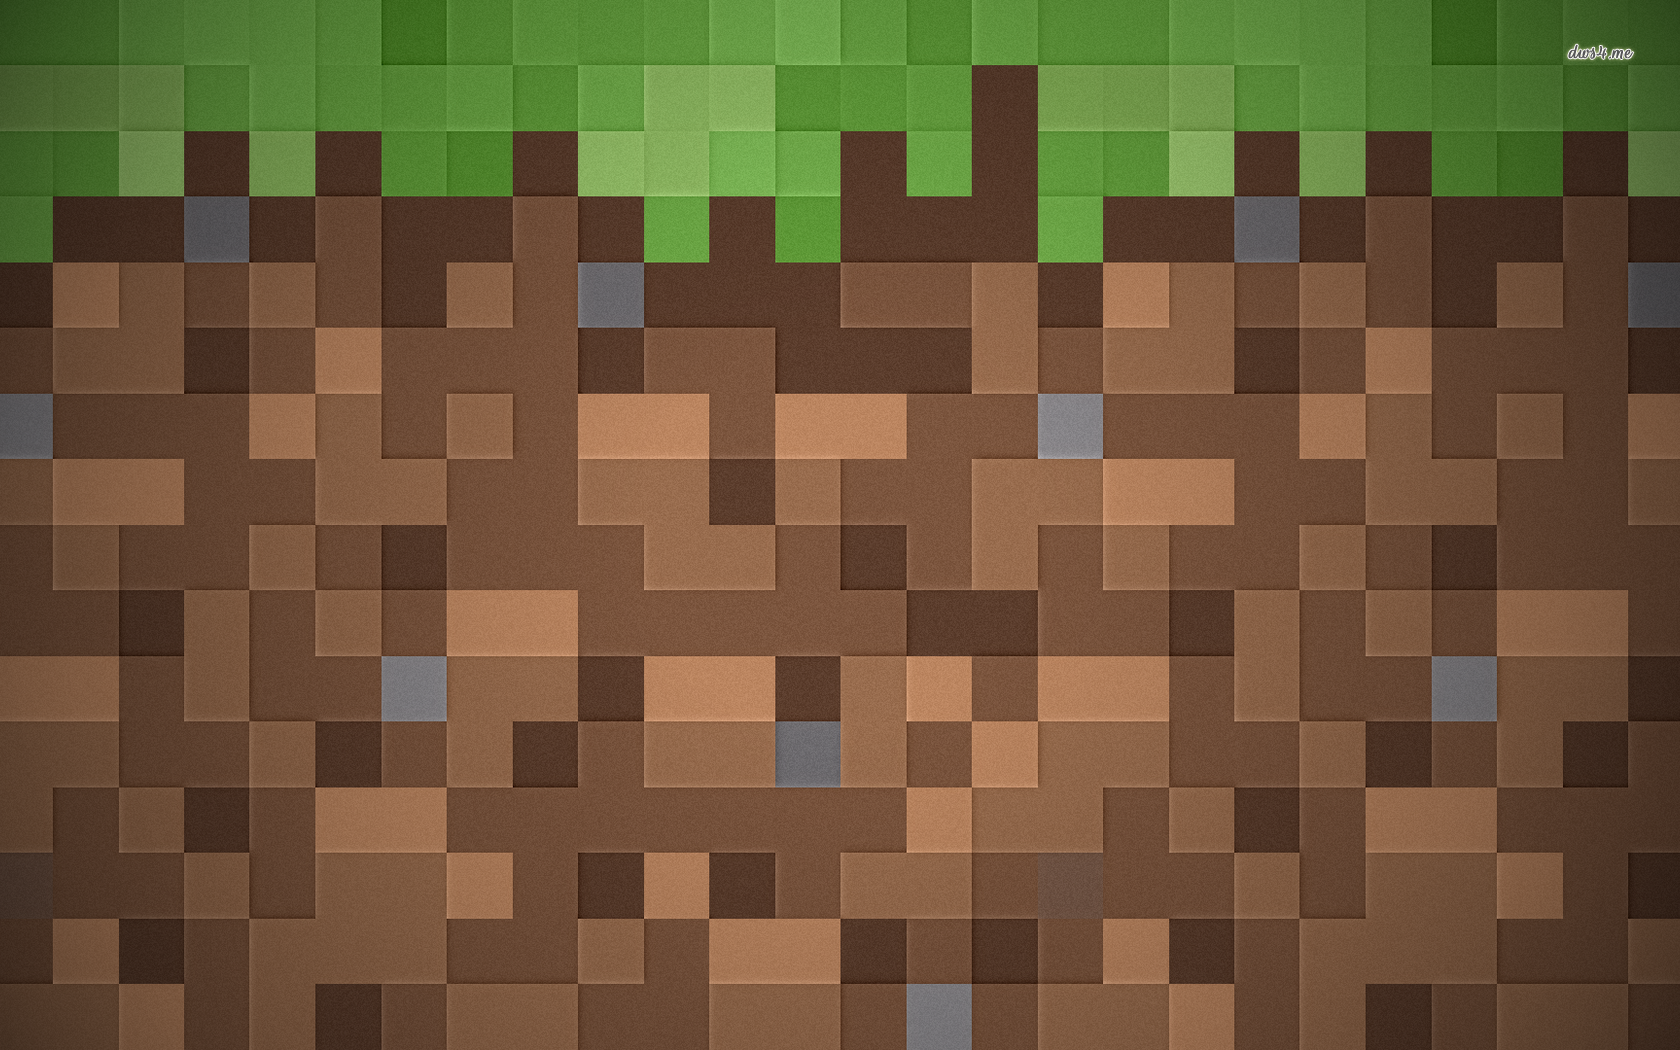 Minecraft Dirt Block Png, png collections at sccpre.cat.